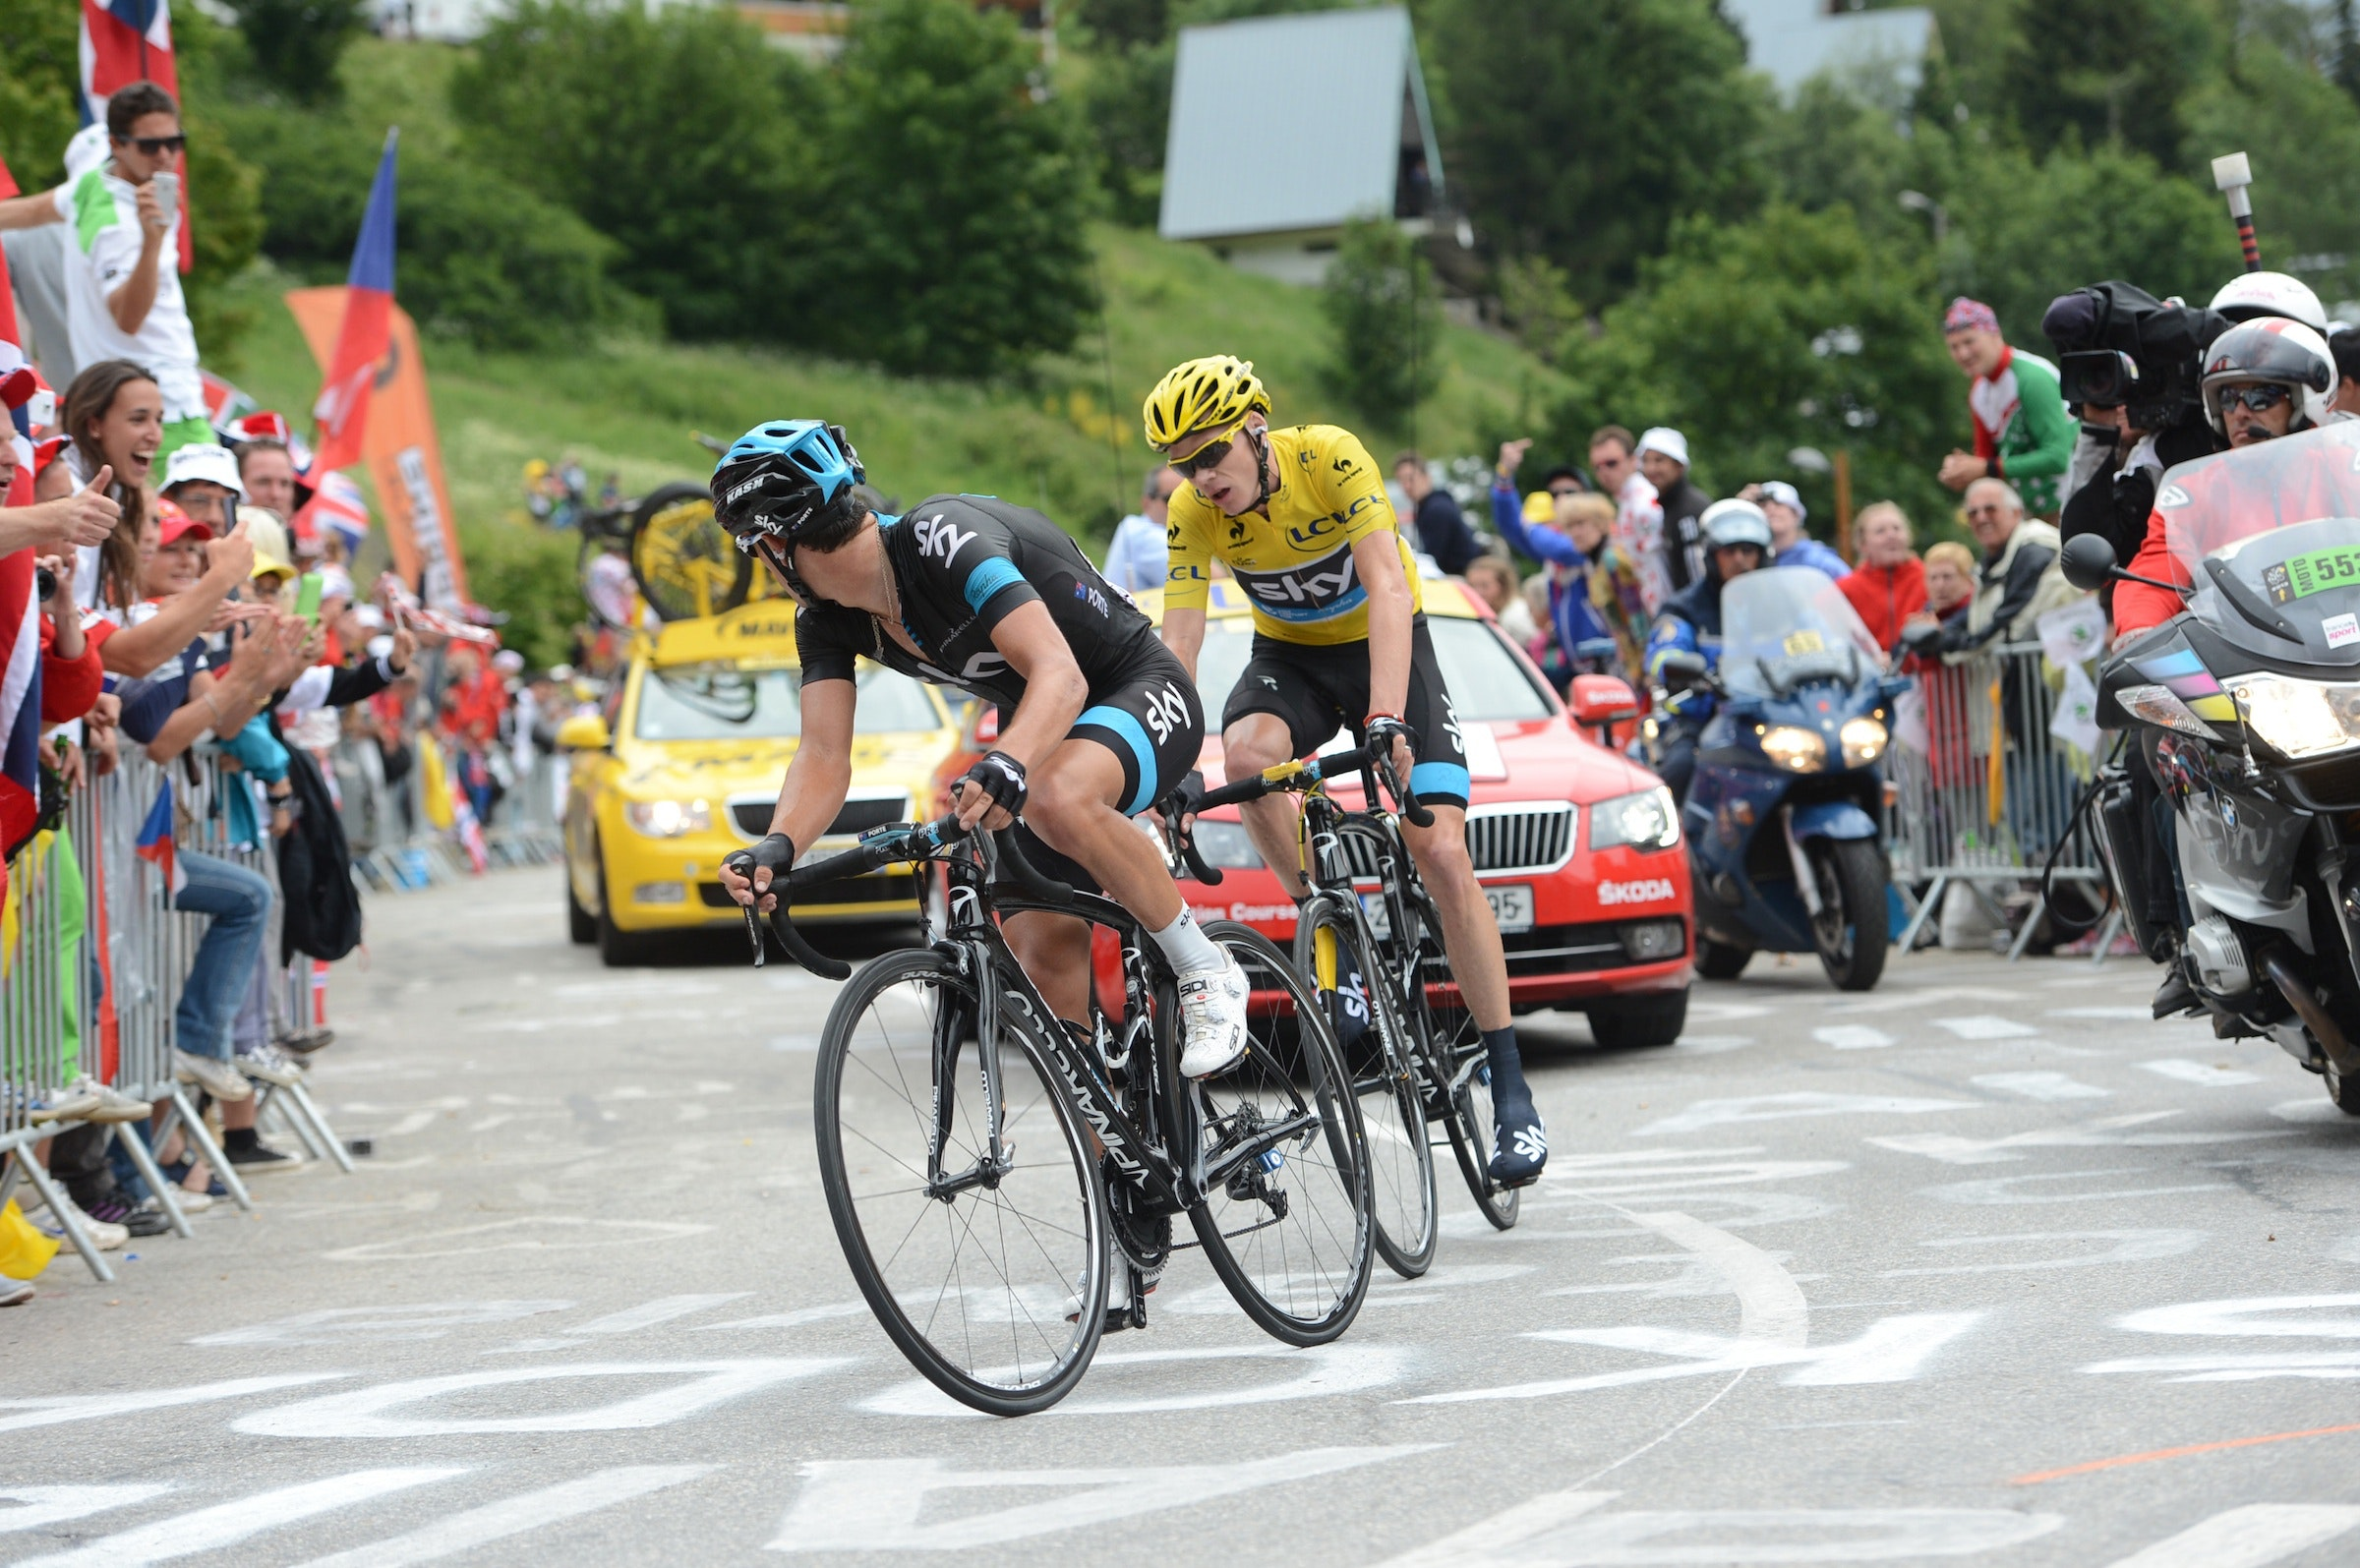 Richie Porte and Chris Froome, Tour de France 2013, stage 18, Alpe d'Huez, pic: ©Stefano Sirotti